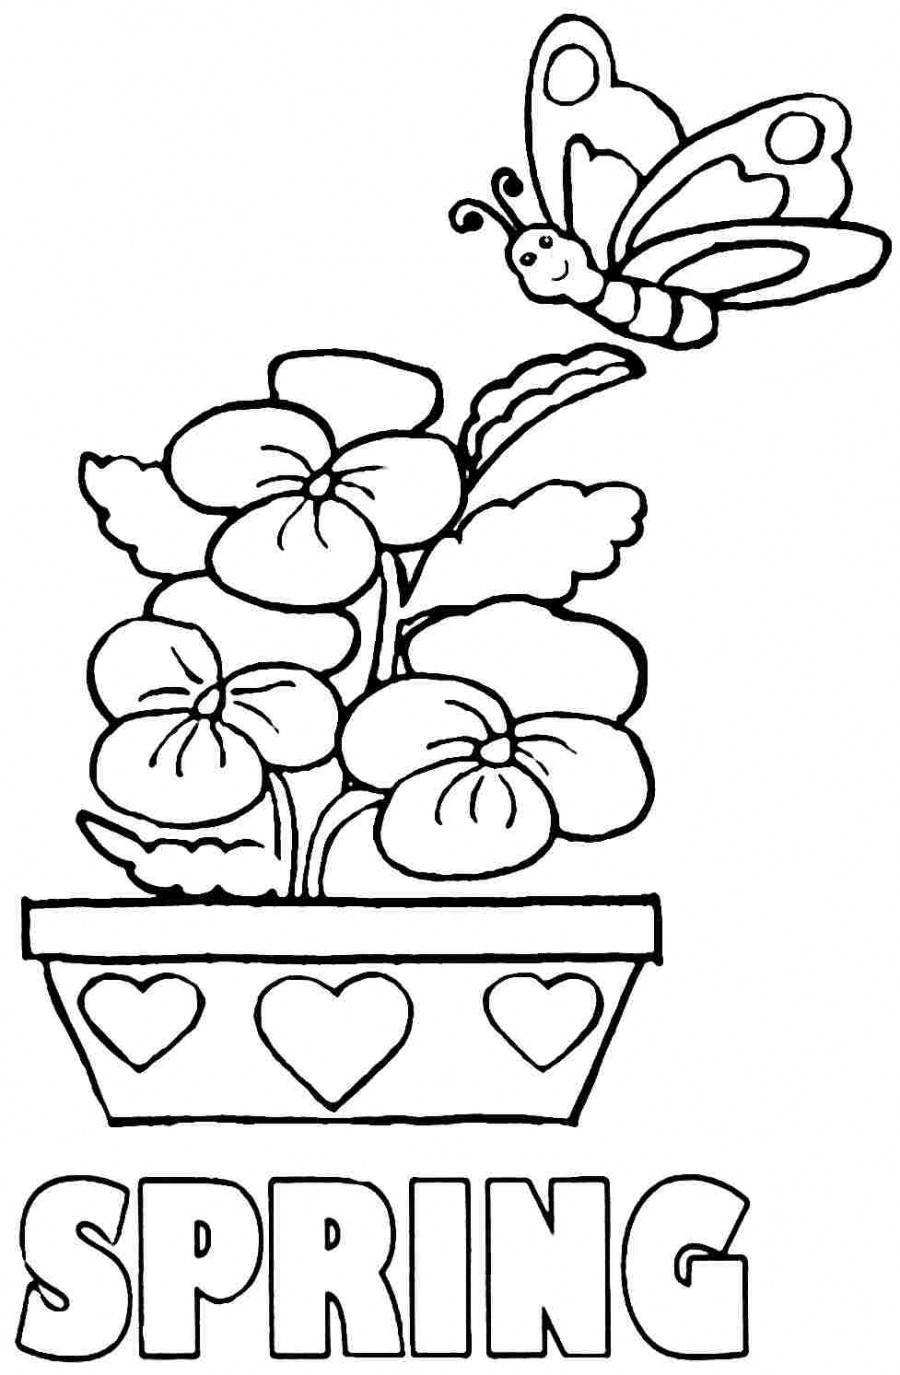 Spring Coloring Sheets Preschool Printable Spring Coloring Pictures - Free Printable Spring Pictures To Color